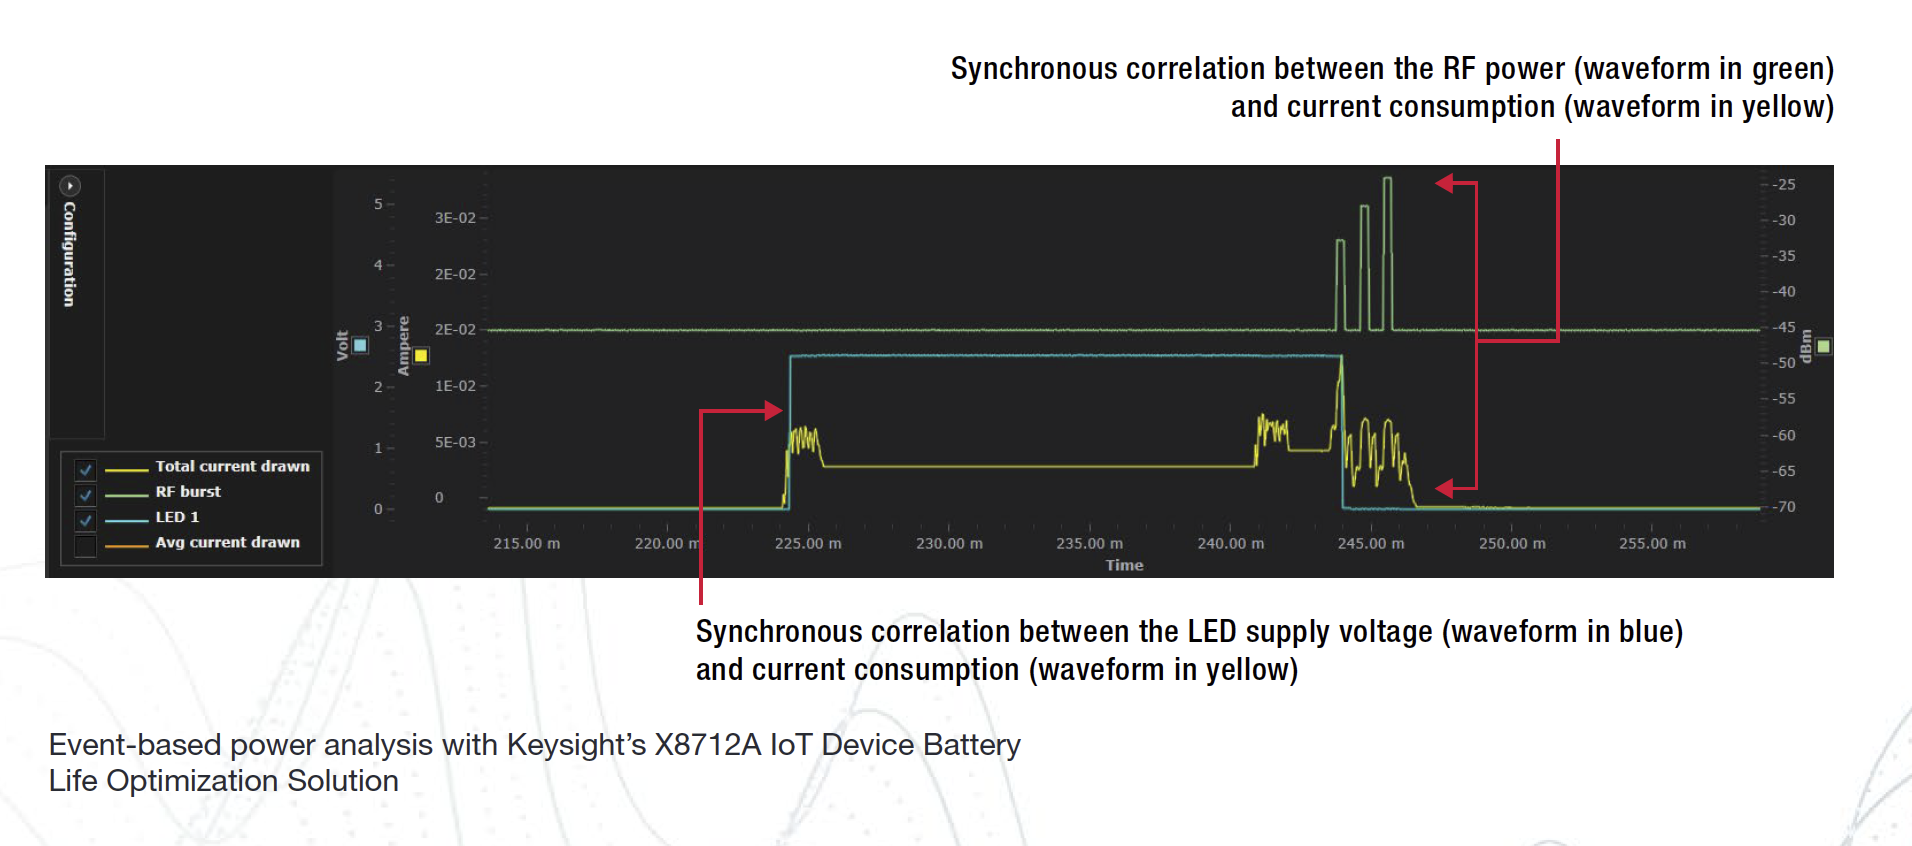 Event-based power analysis with Keysight's X8712A IoT Device Battery Life Optimization Solution